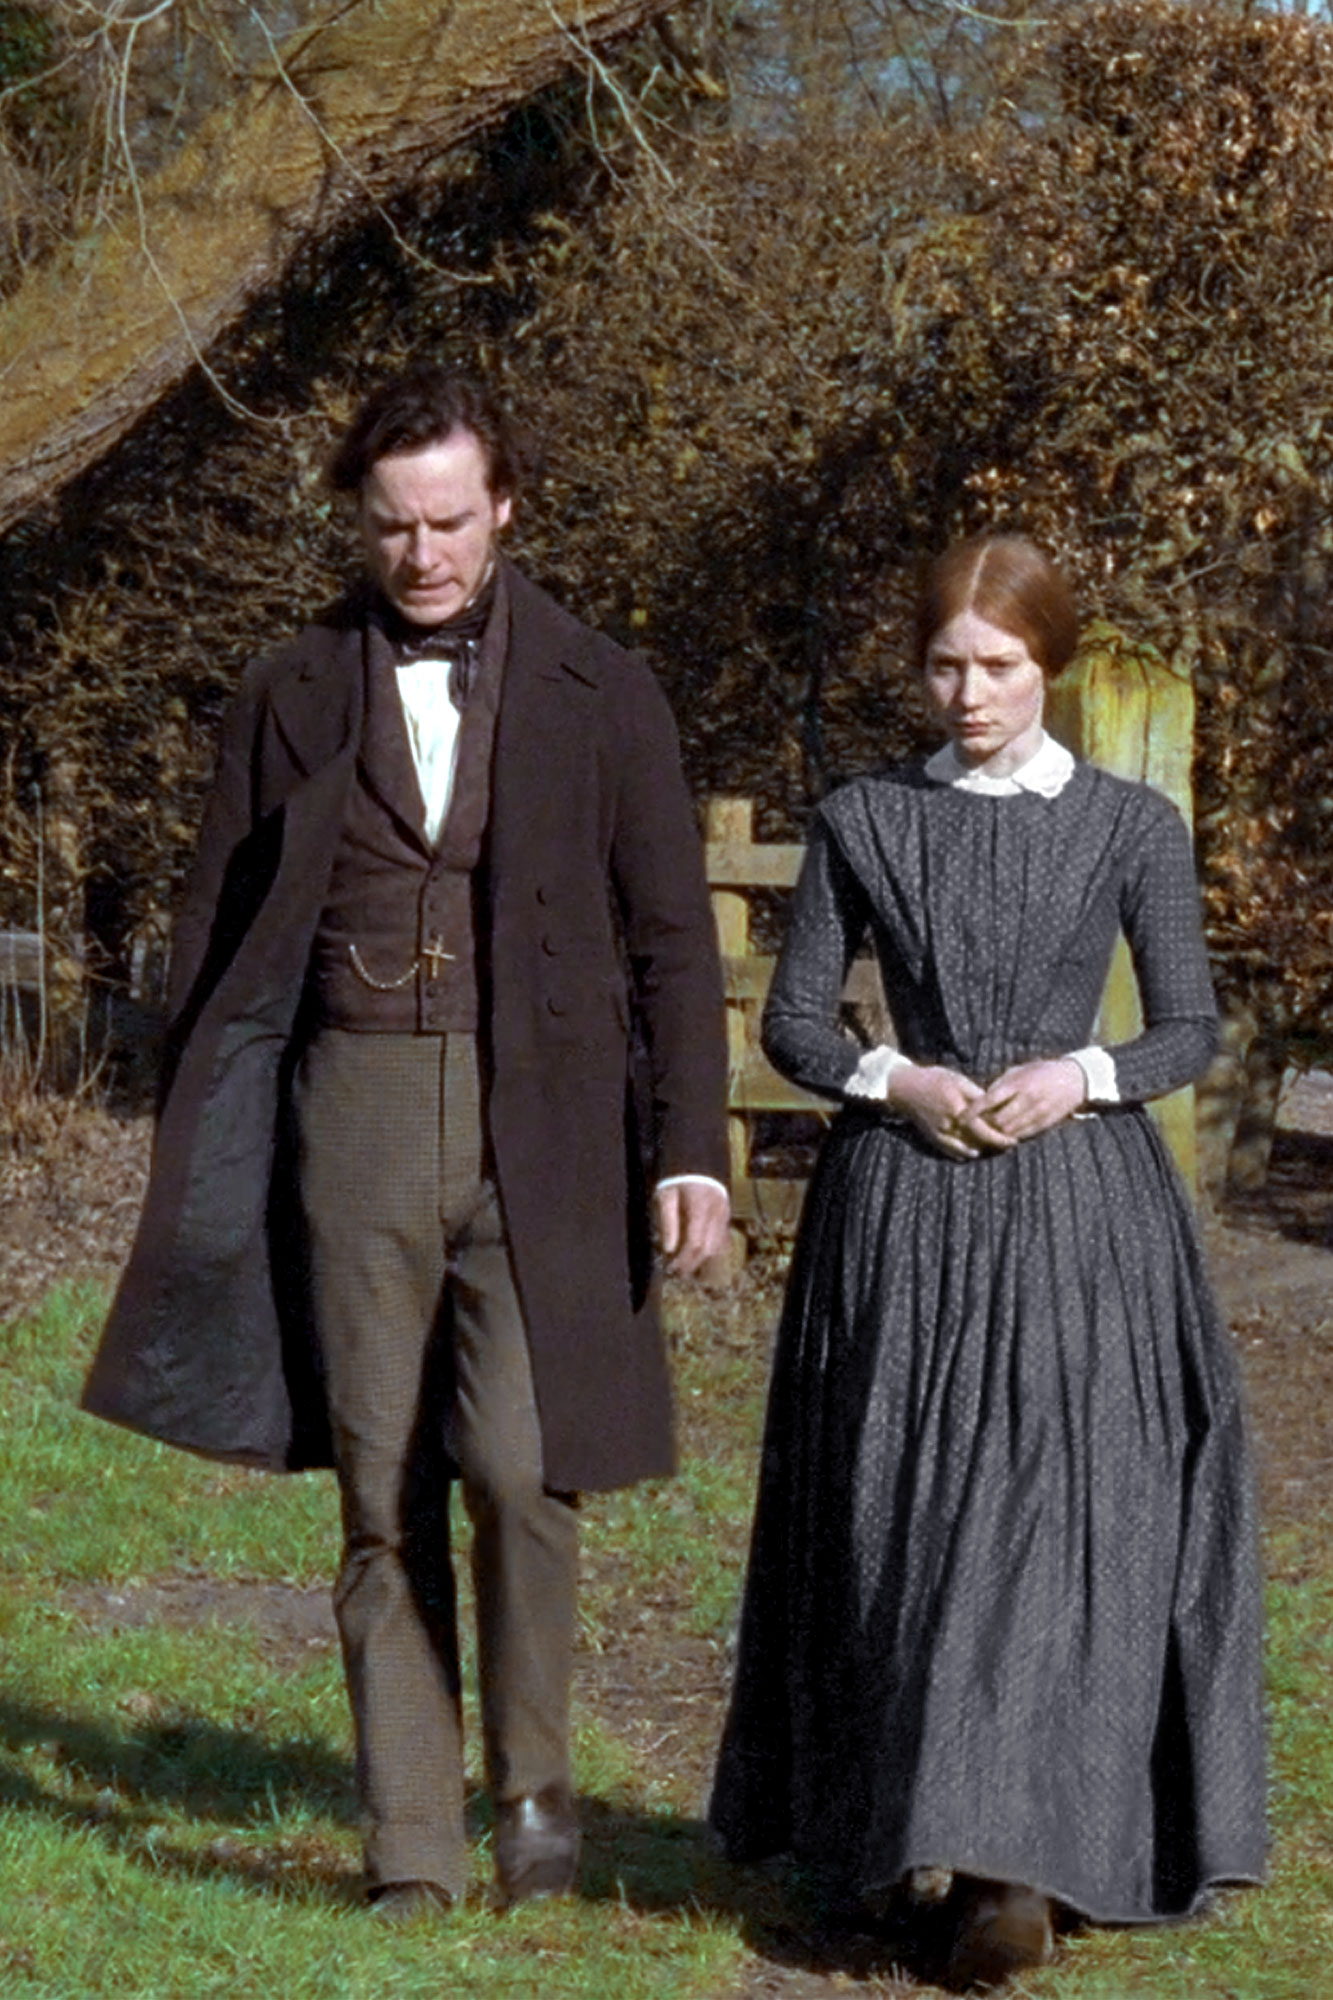 jane eyre as a feminist novel essay